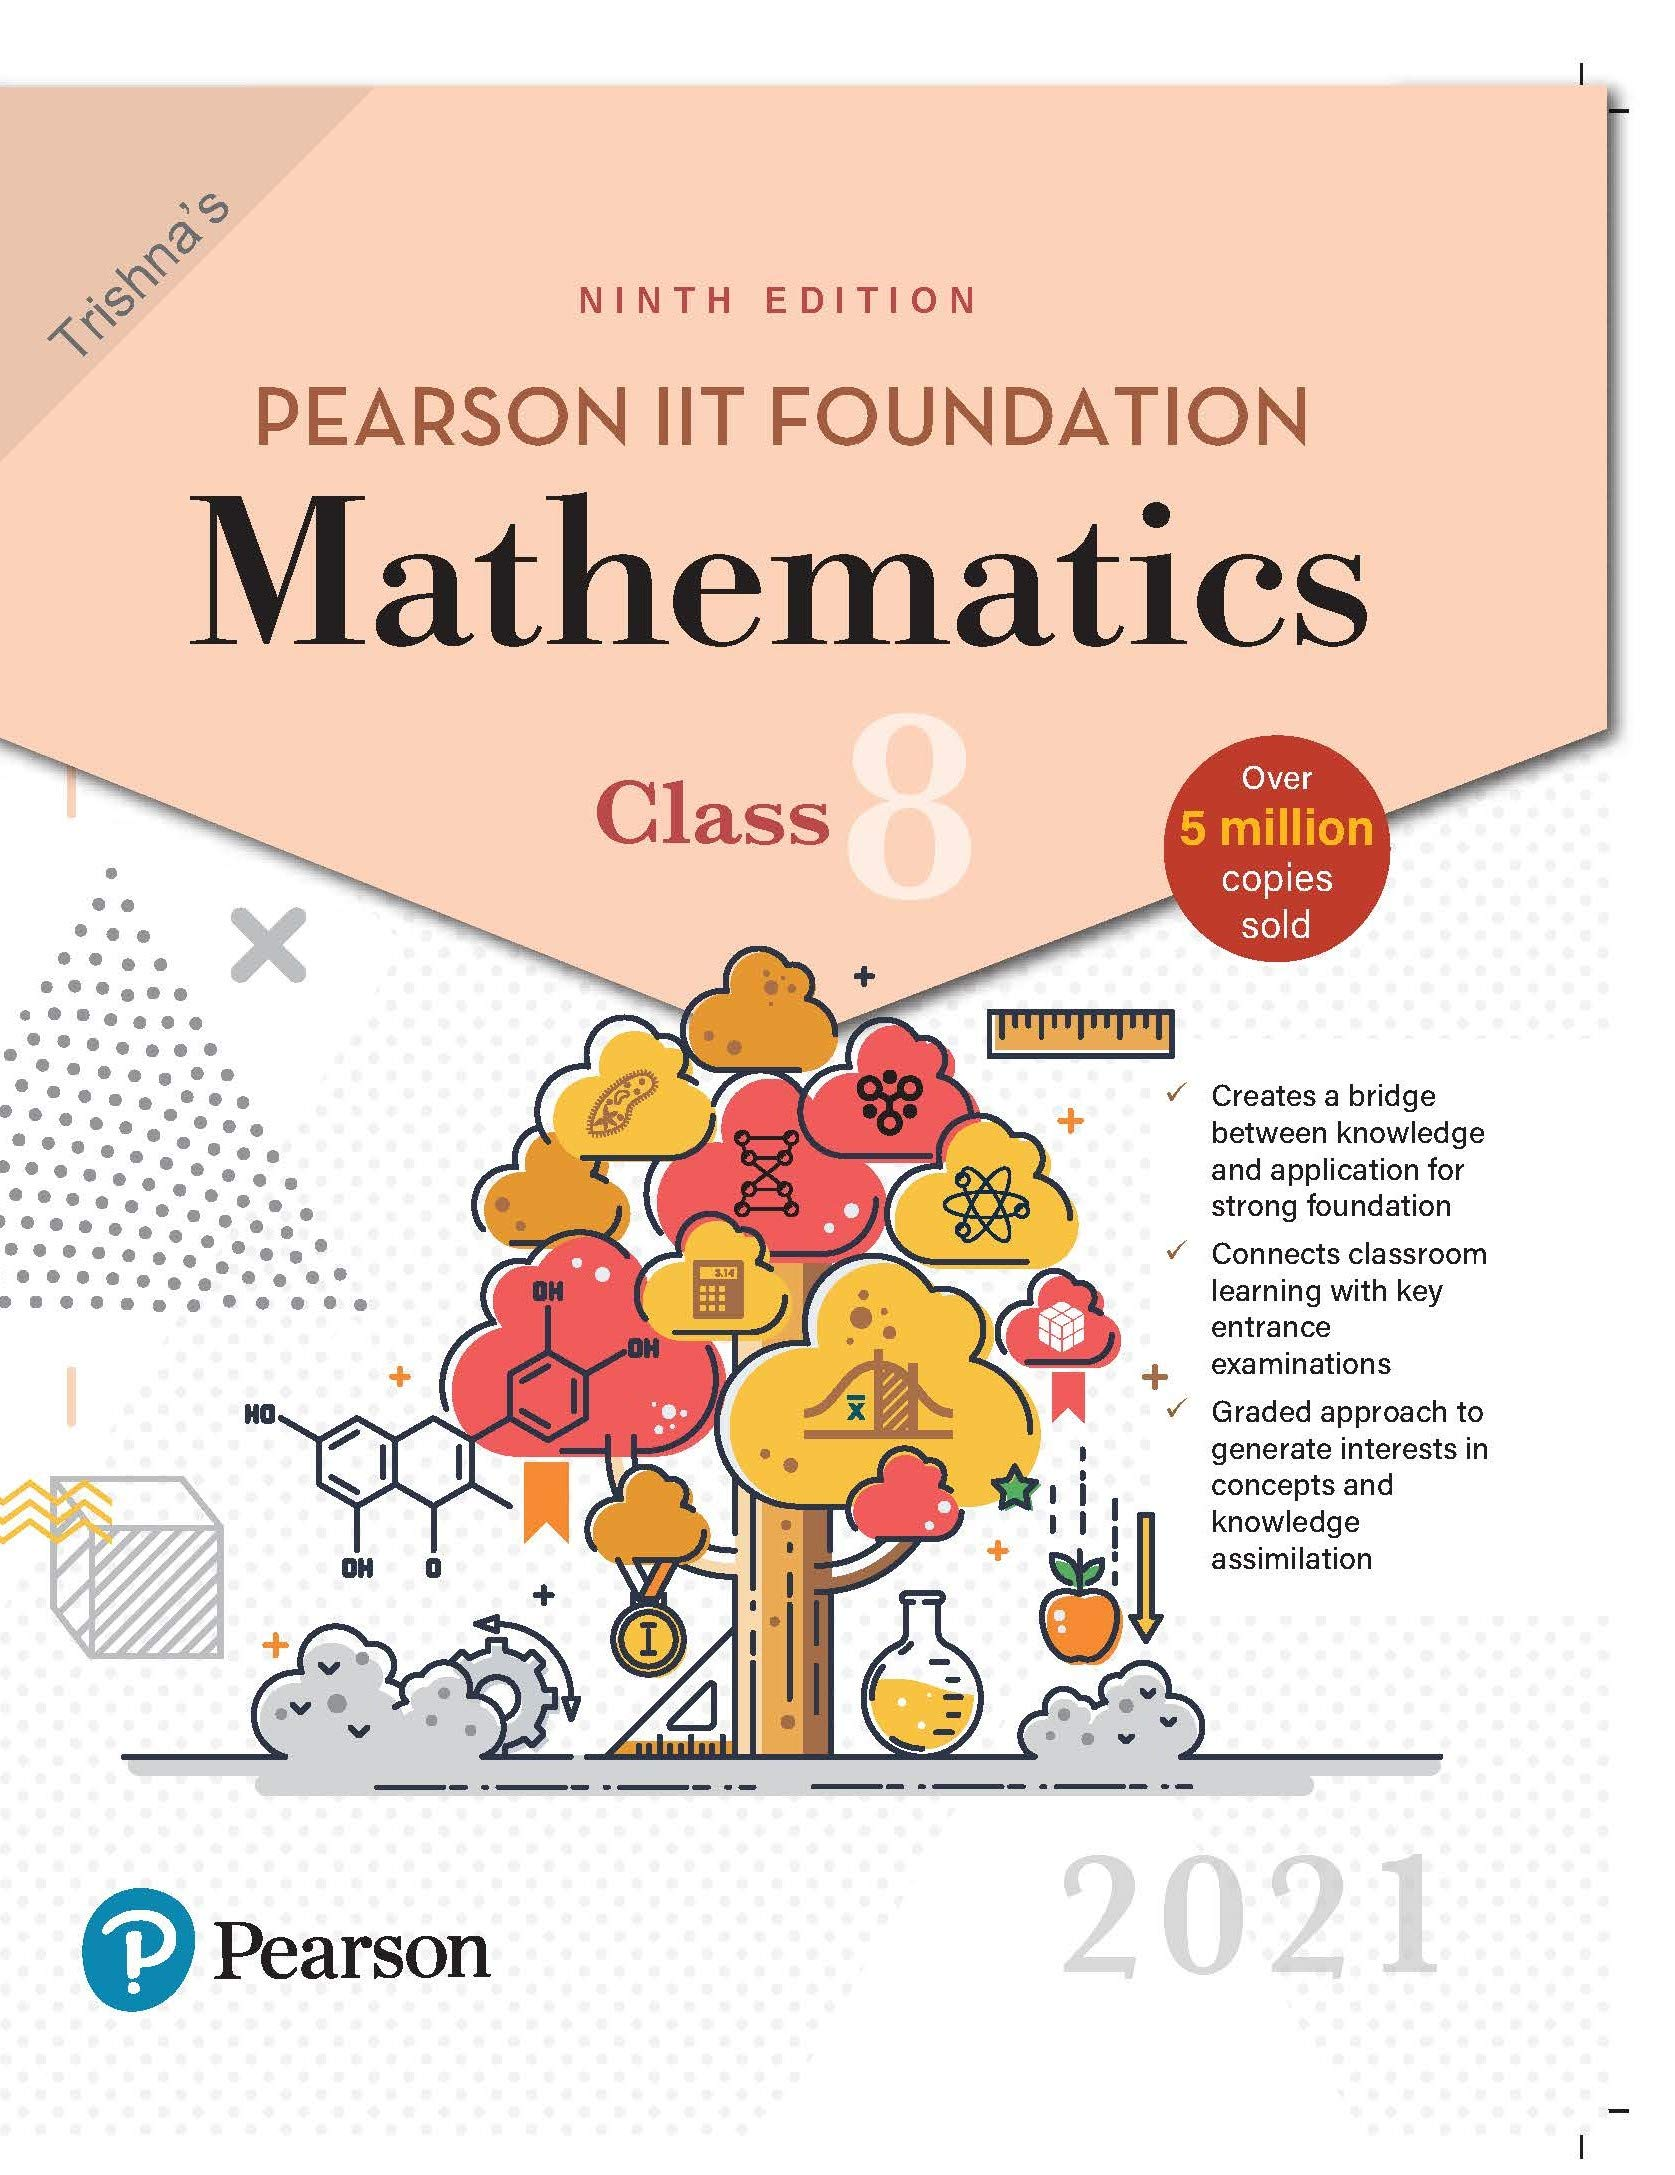 Pearson IIT Foundation Mathematics | Class 8| 2021 Edition| By Pearson